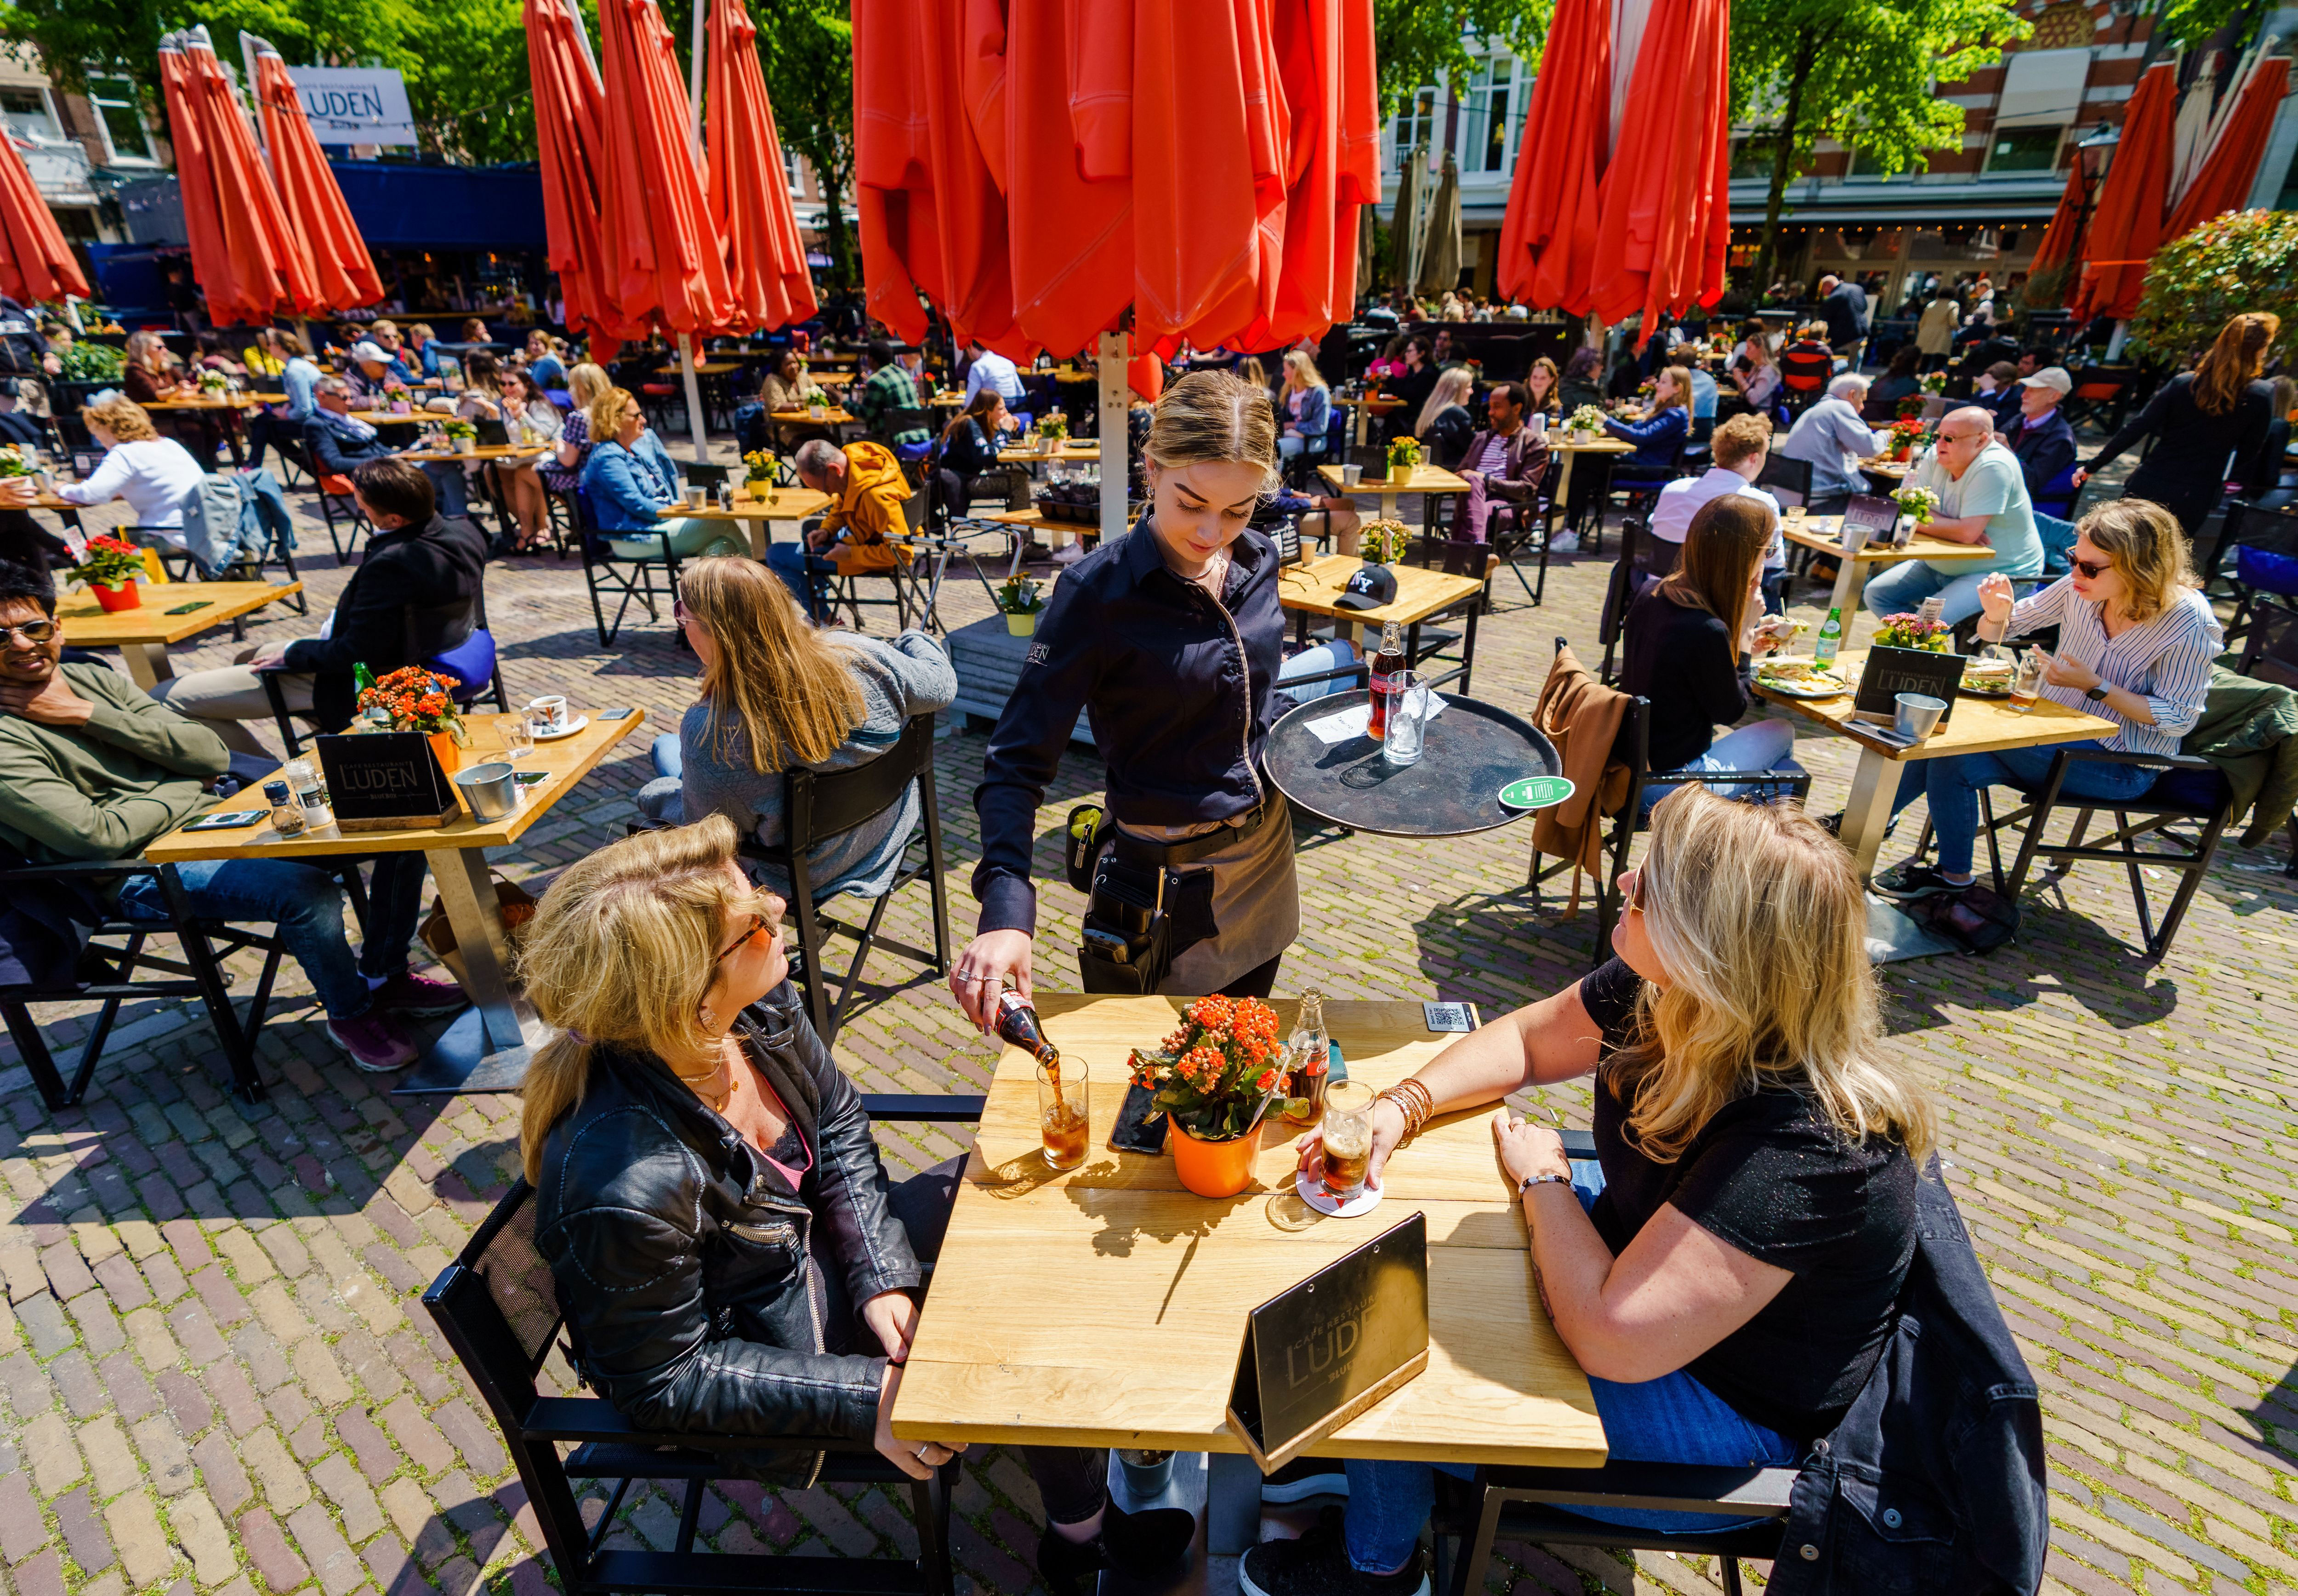 People dine at a cafe in The Hague, Netherlands, on May 28, 2021.